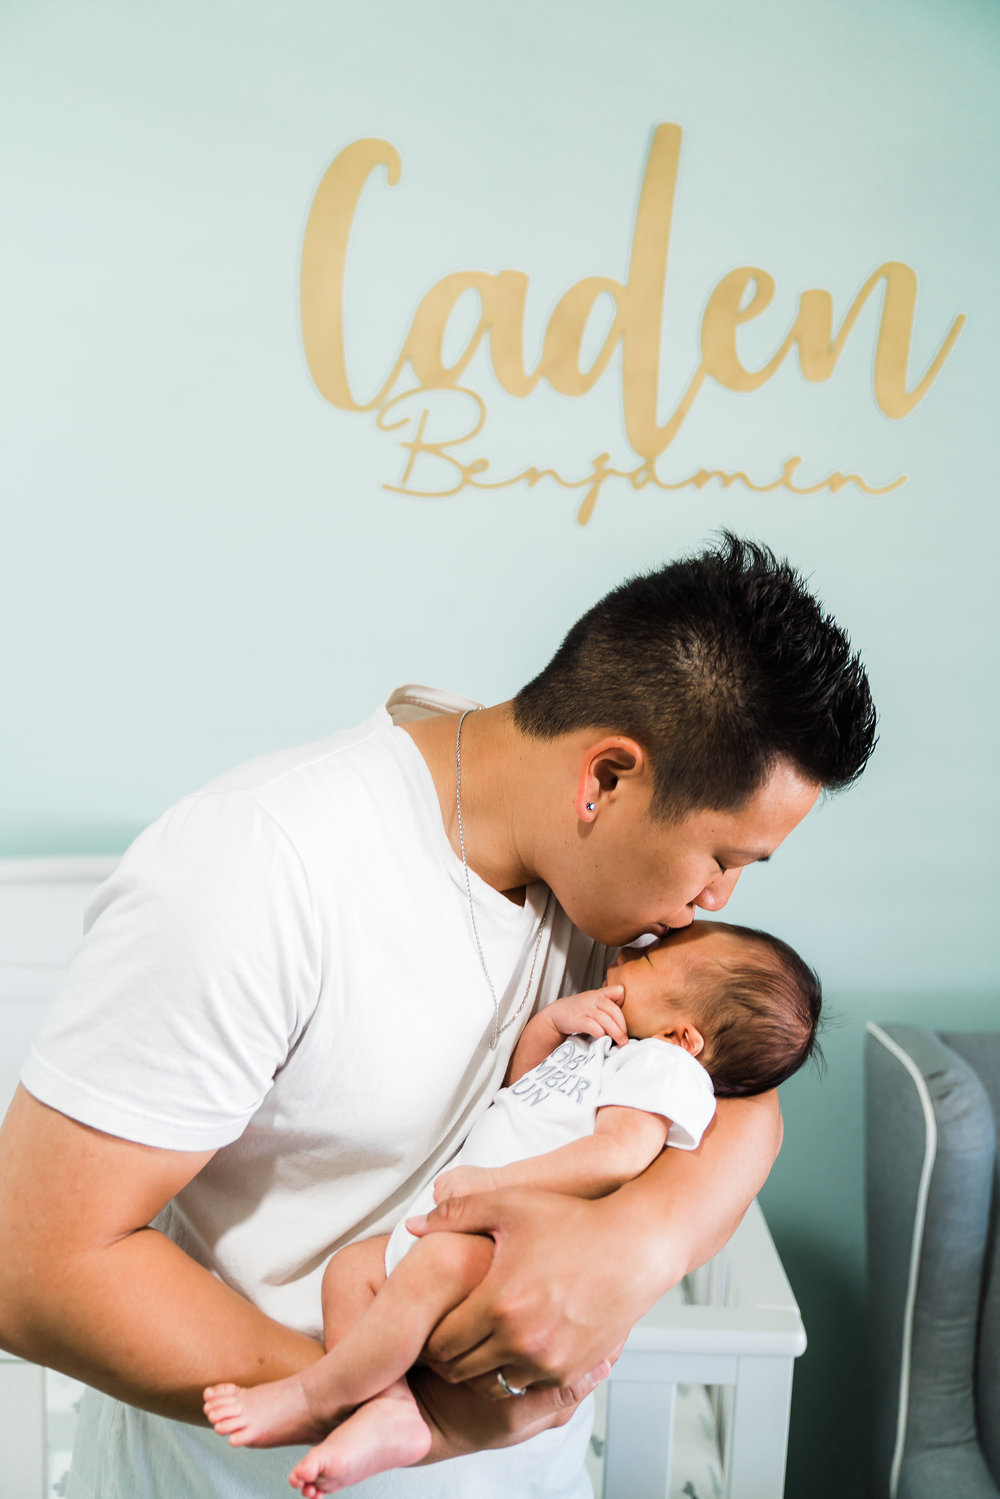 Bryan-Miraflor-Photography-Caden-Josie-Chris-Newborn-Photo-Session-20180708-047.jpg